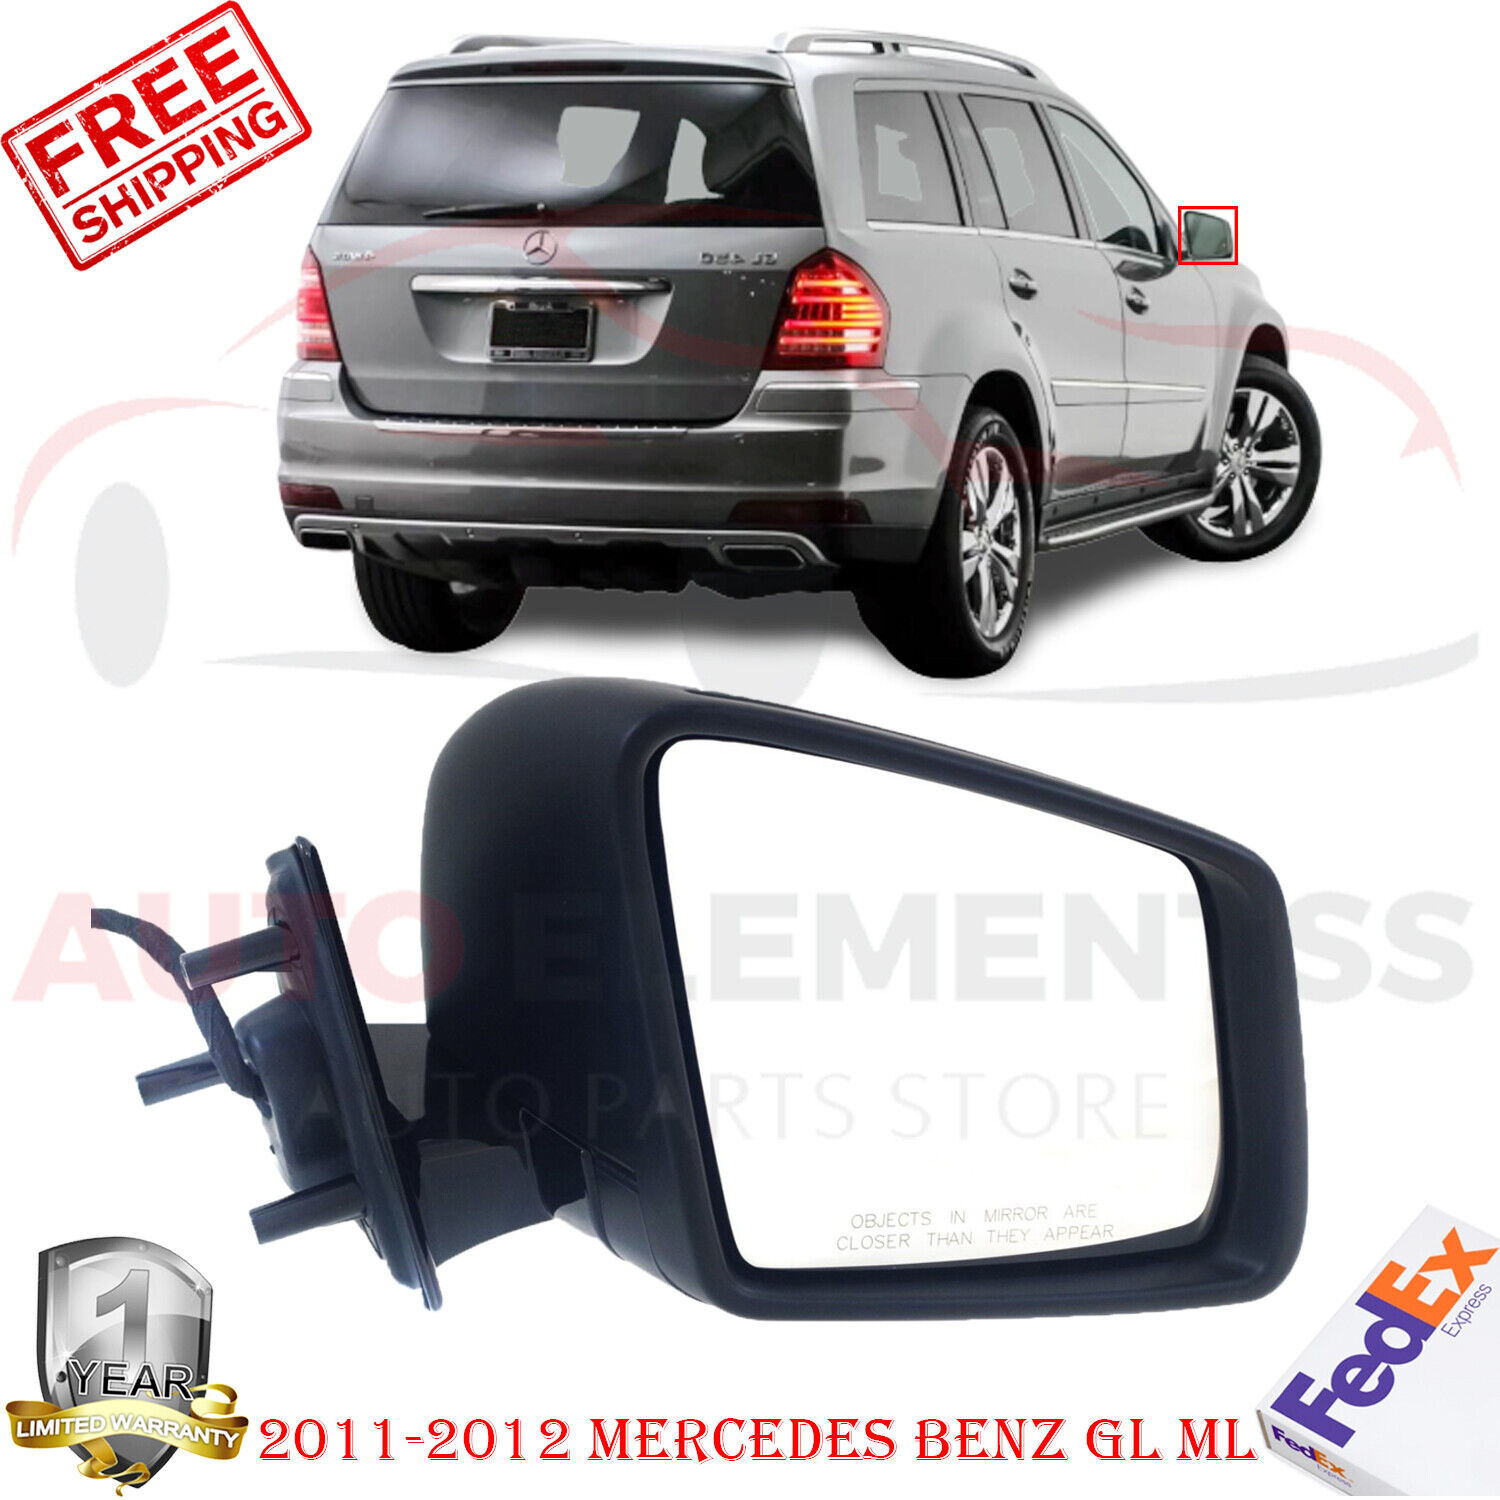 Value Right Mirror Heated In-housing Signal Light Passenger Side RH Hand OE Quality Replacement